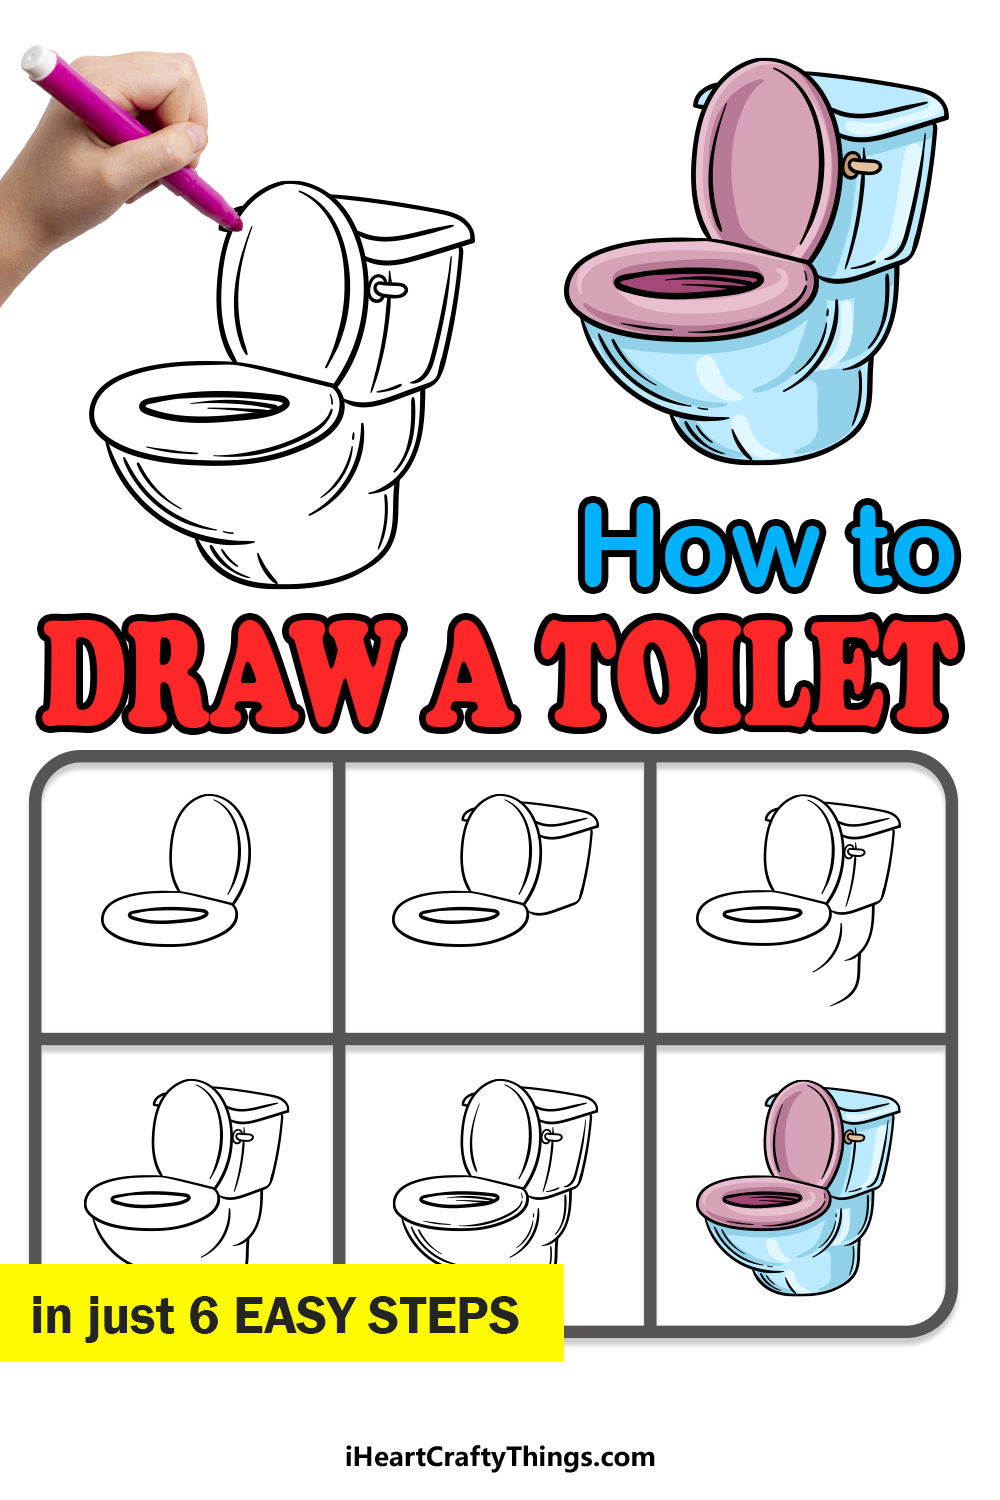 how to draw a toilet in 6 easy steps